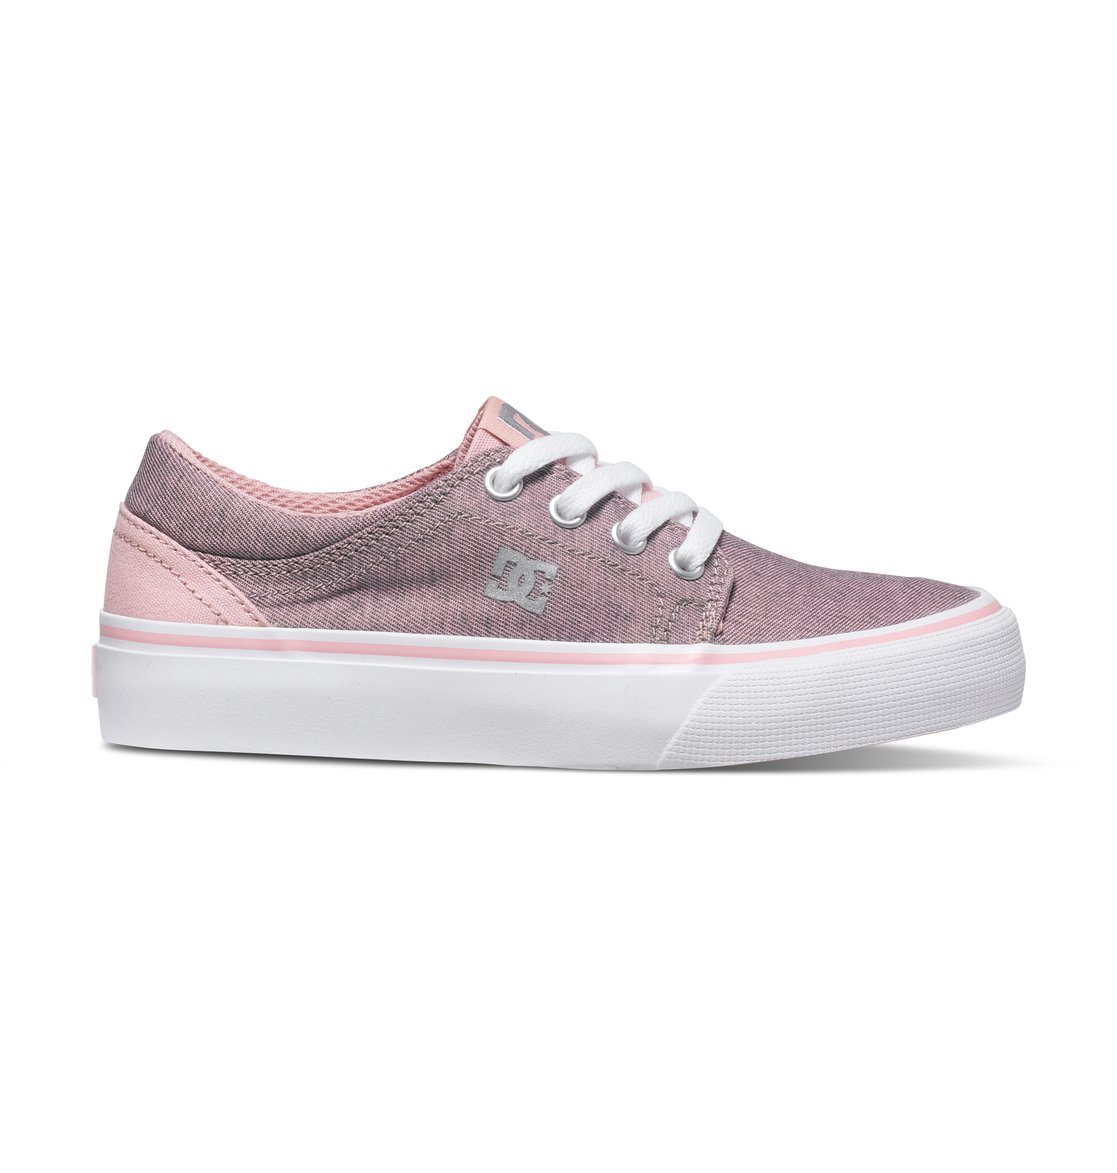 http://static.quiksilver.com/www/store.quiksilver.eu/html/images/catalogs/global/dcshoes-products/all/default/hi-res/adbs300104_trasetxse,p_pw0_frt2.jpg